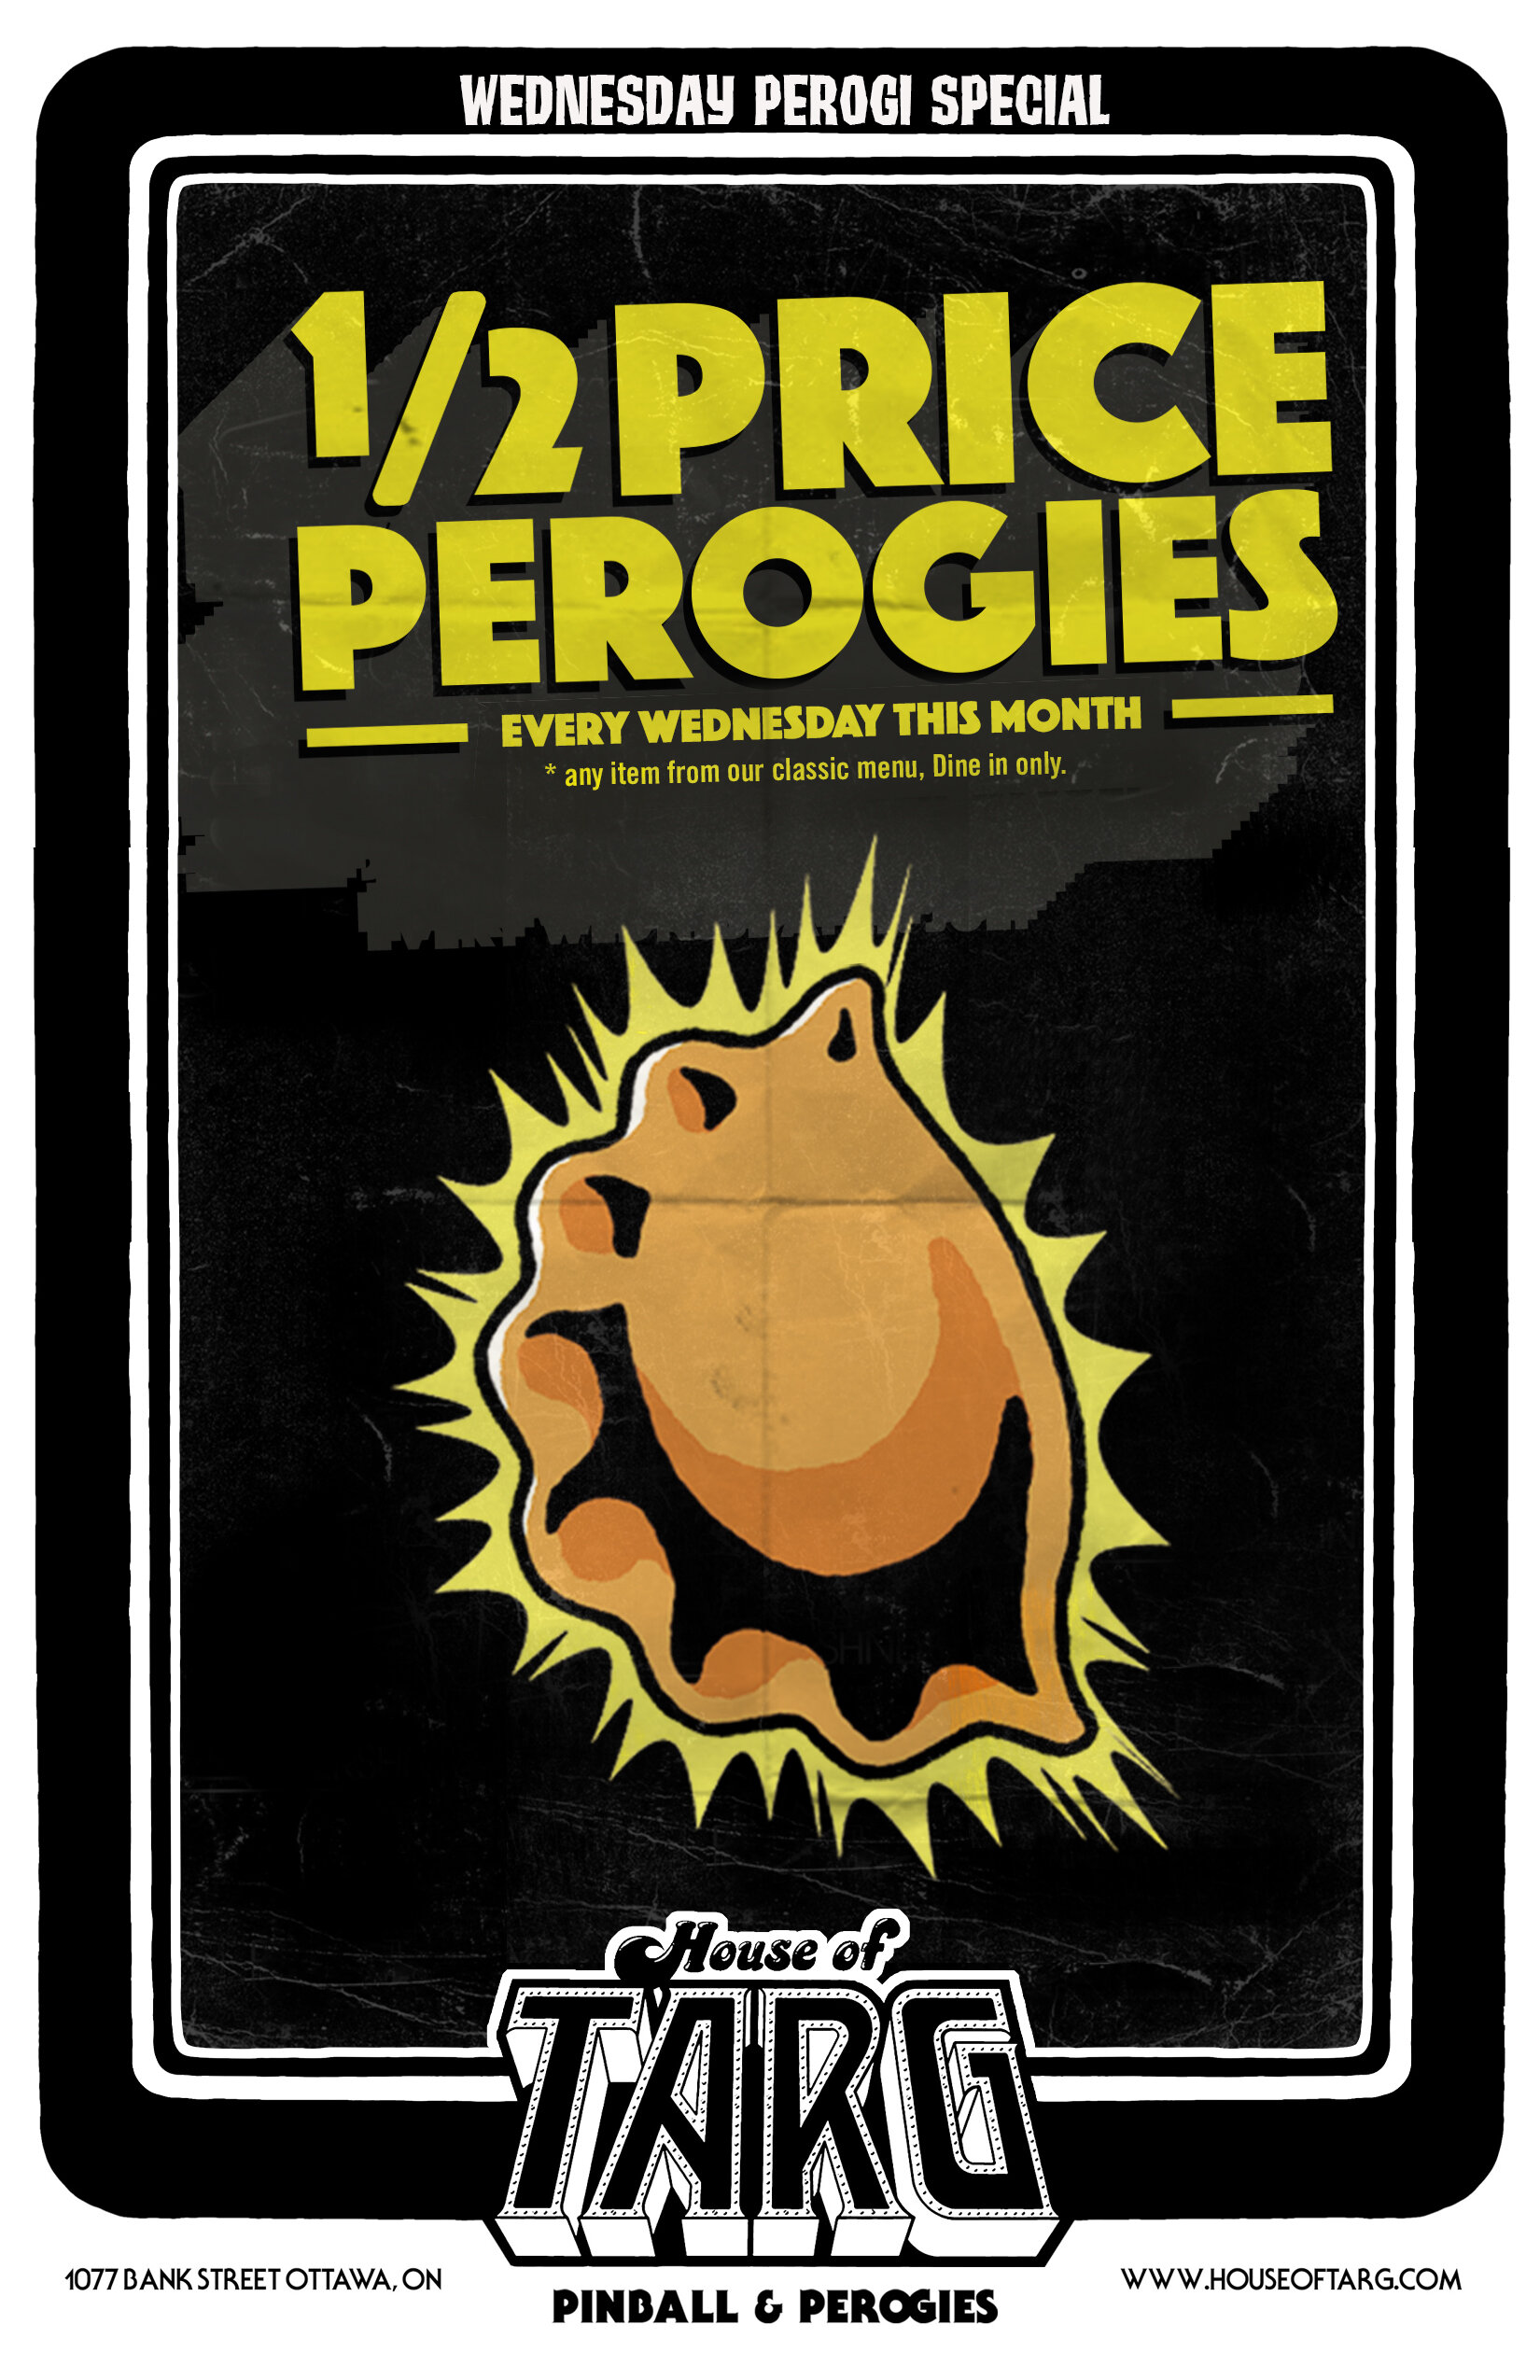 1/2 Price Perogies from our Classic Menu. *Dine in only